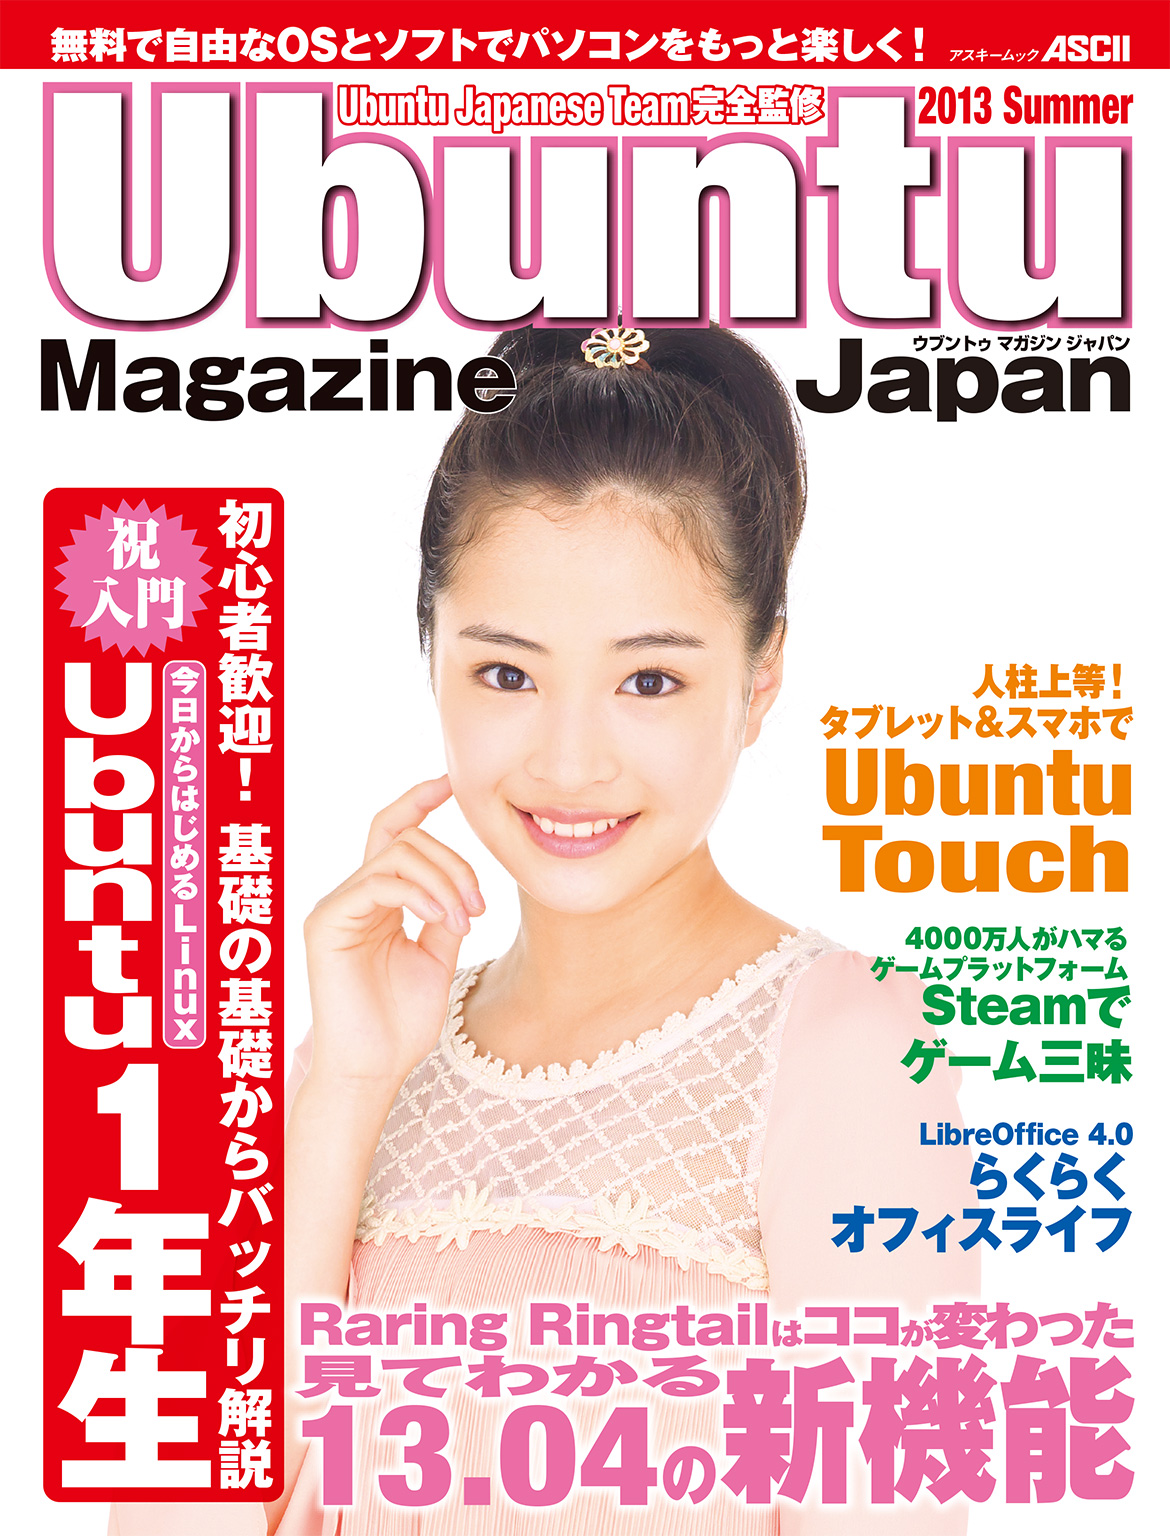 Ubuntu Magazine Japan 2013 Summer拡大写真